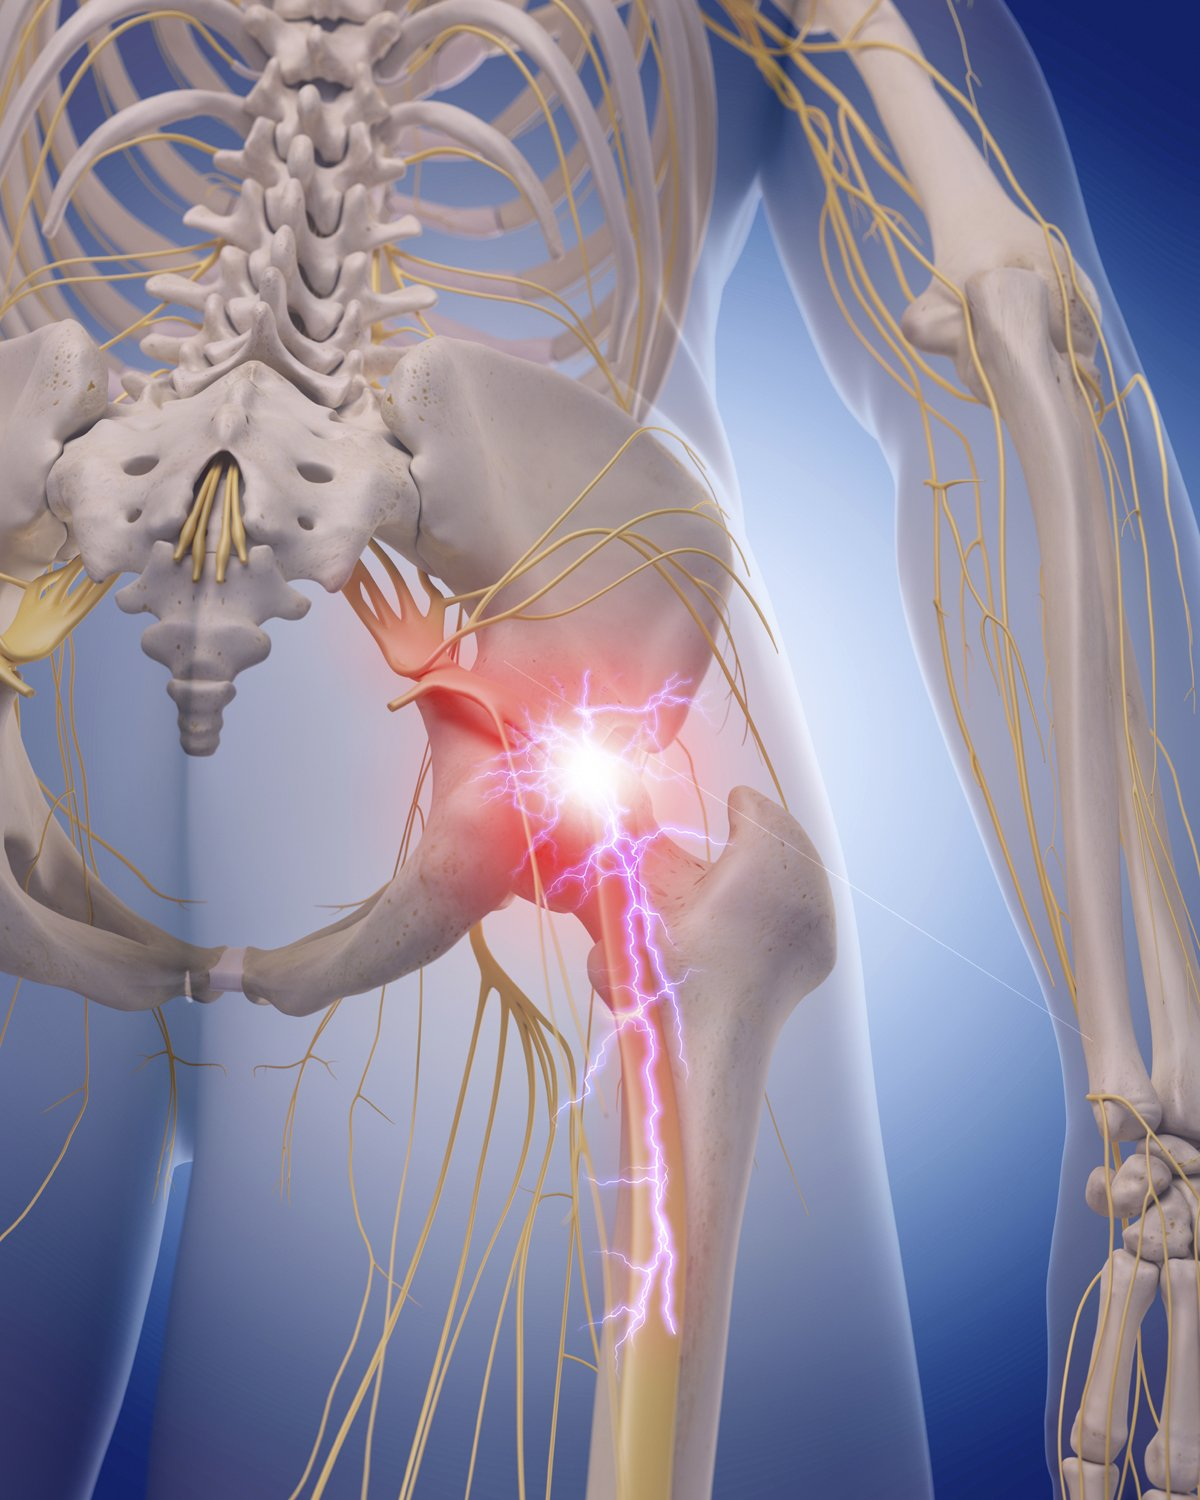 Once your back pain radiates down your backside and leg, that's sciatica